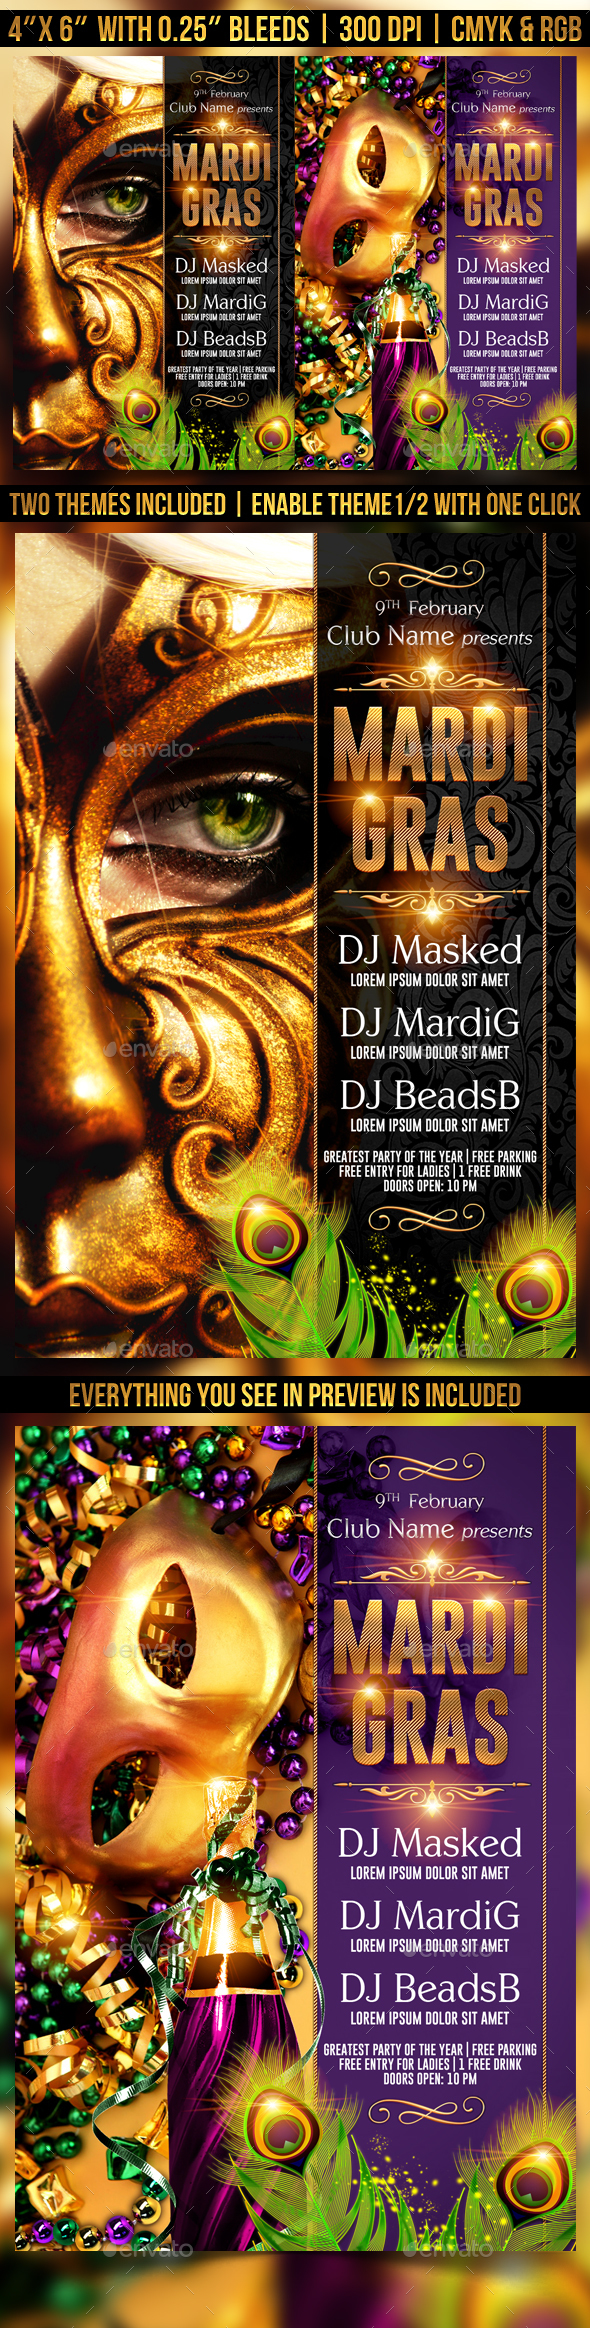 Mardi Gras or Masquerade Flyer Template - Clubs & Parties Events